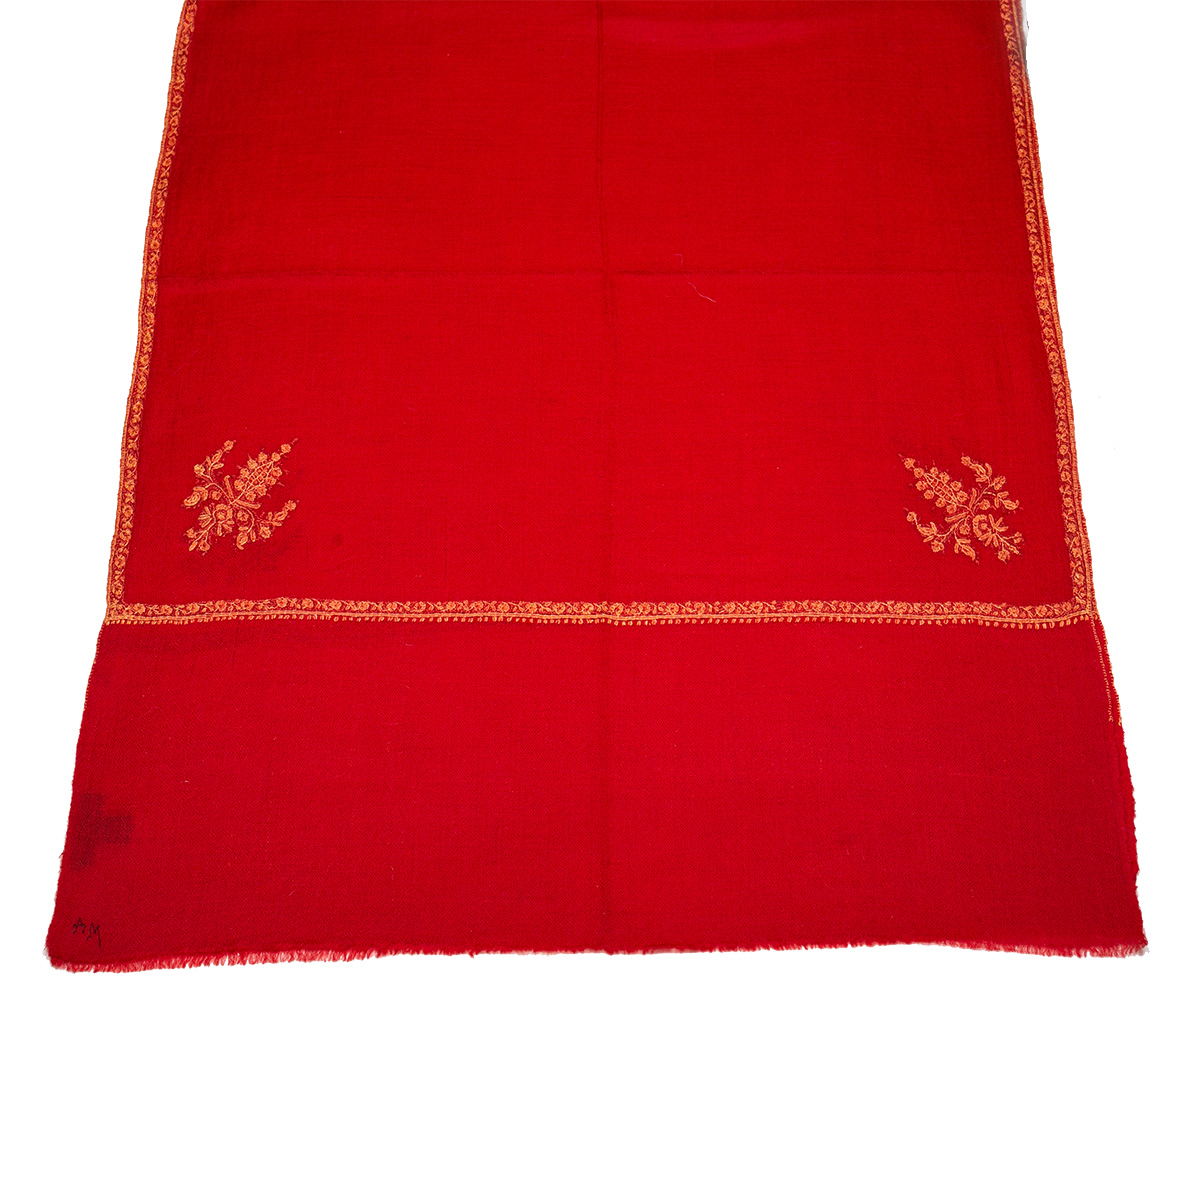 Hand Embroidered Cashmere Pashmina Stole - Red & Orange